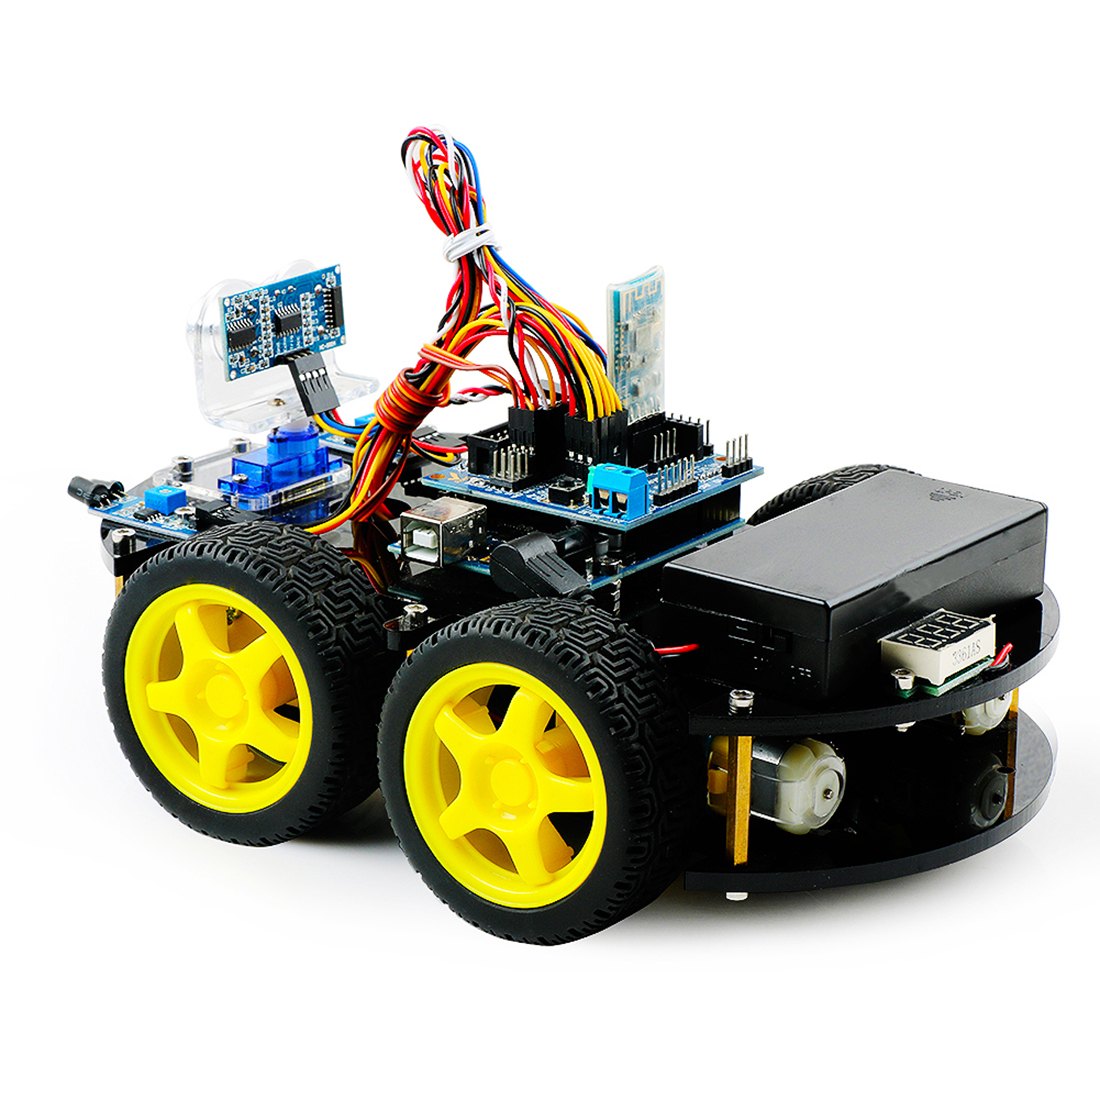 DIY Obstacle Avoidance Smart Programmable Robot Car Educational Learning Kit for Arduino UNO High Tech Toy For Christmas 1